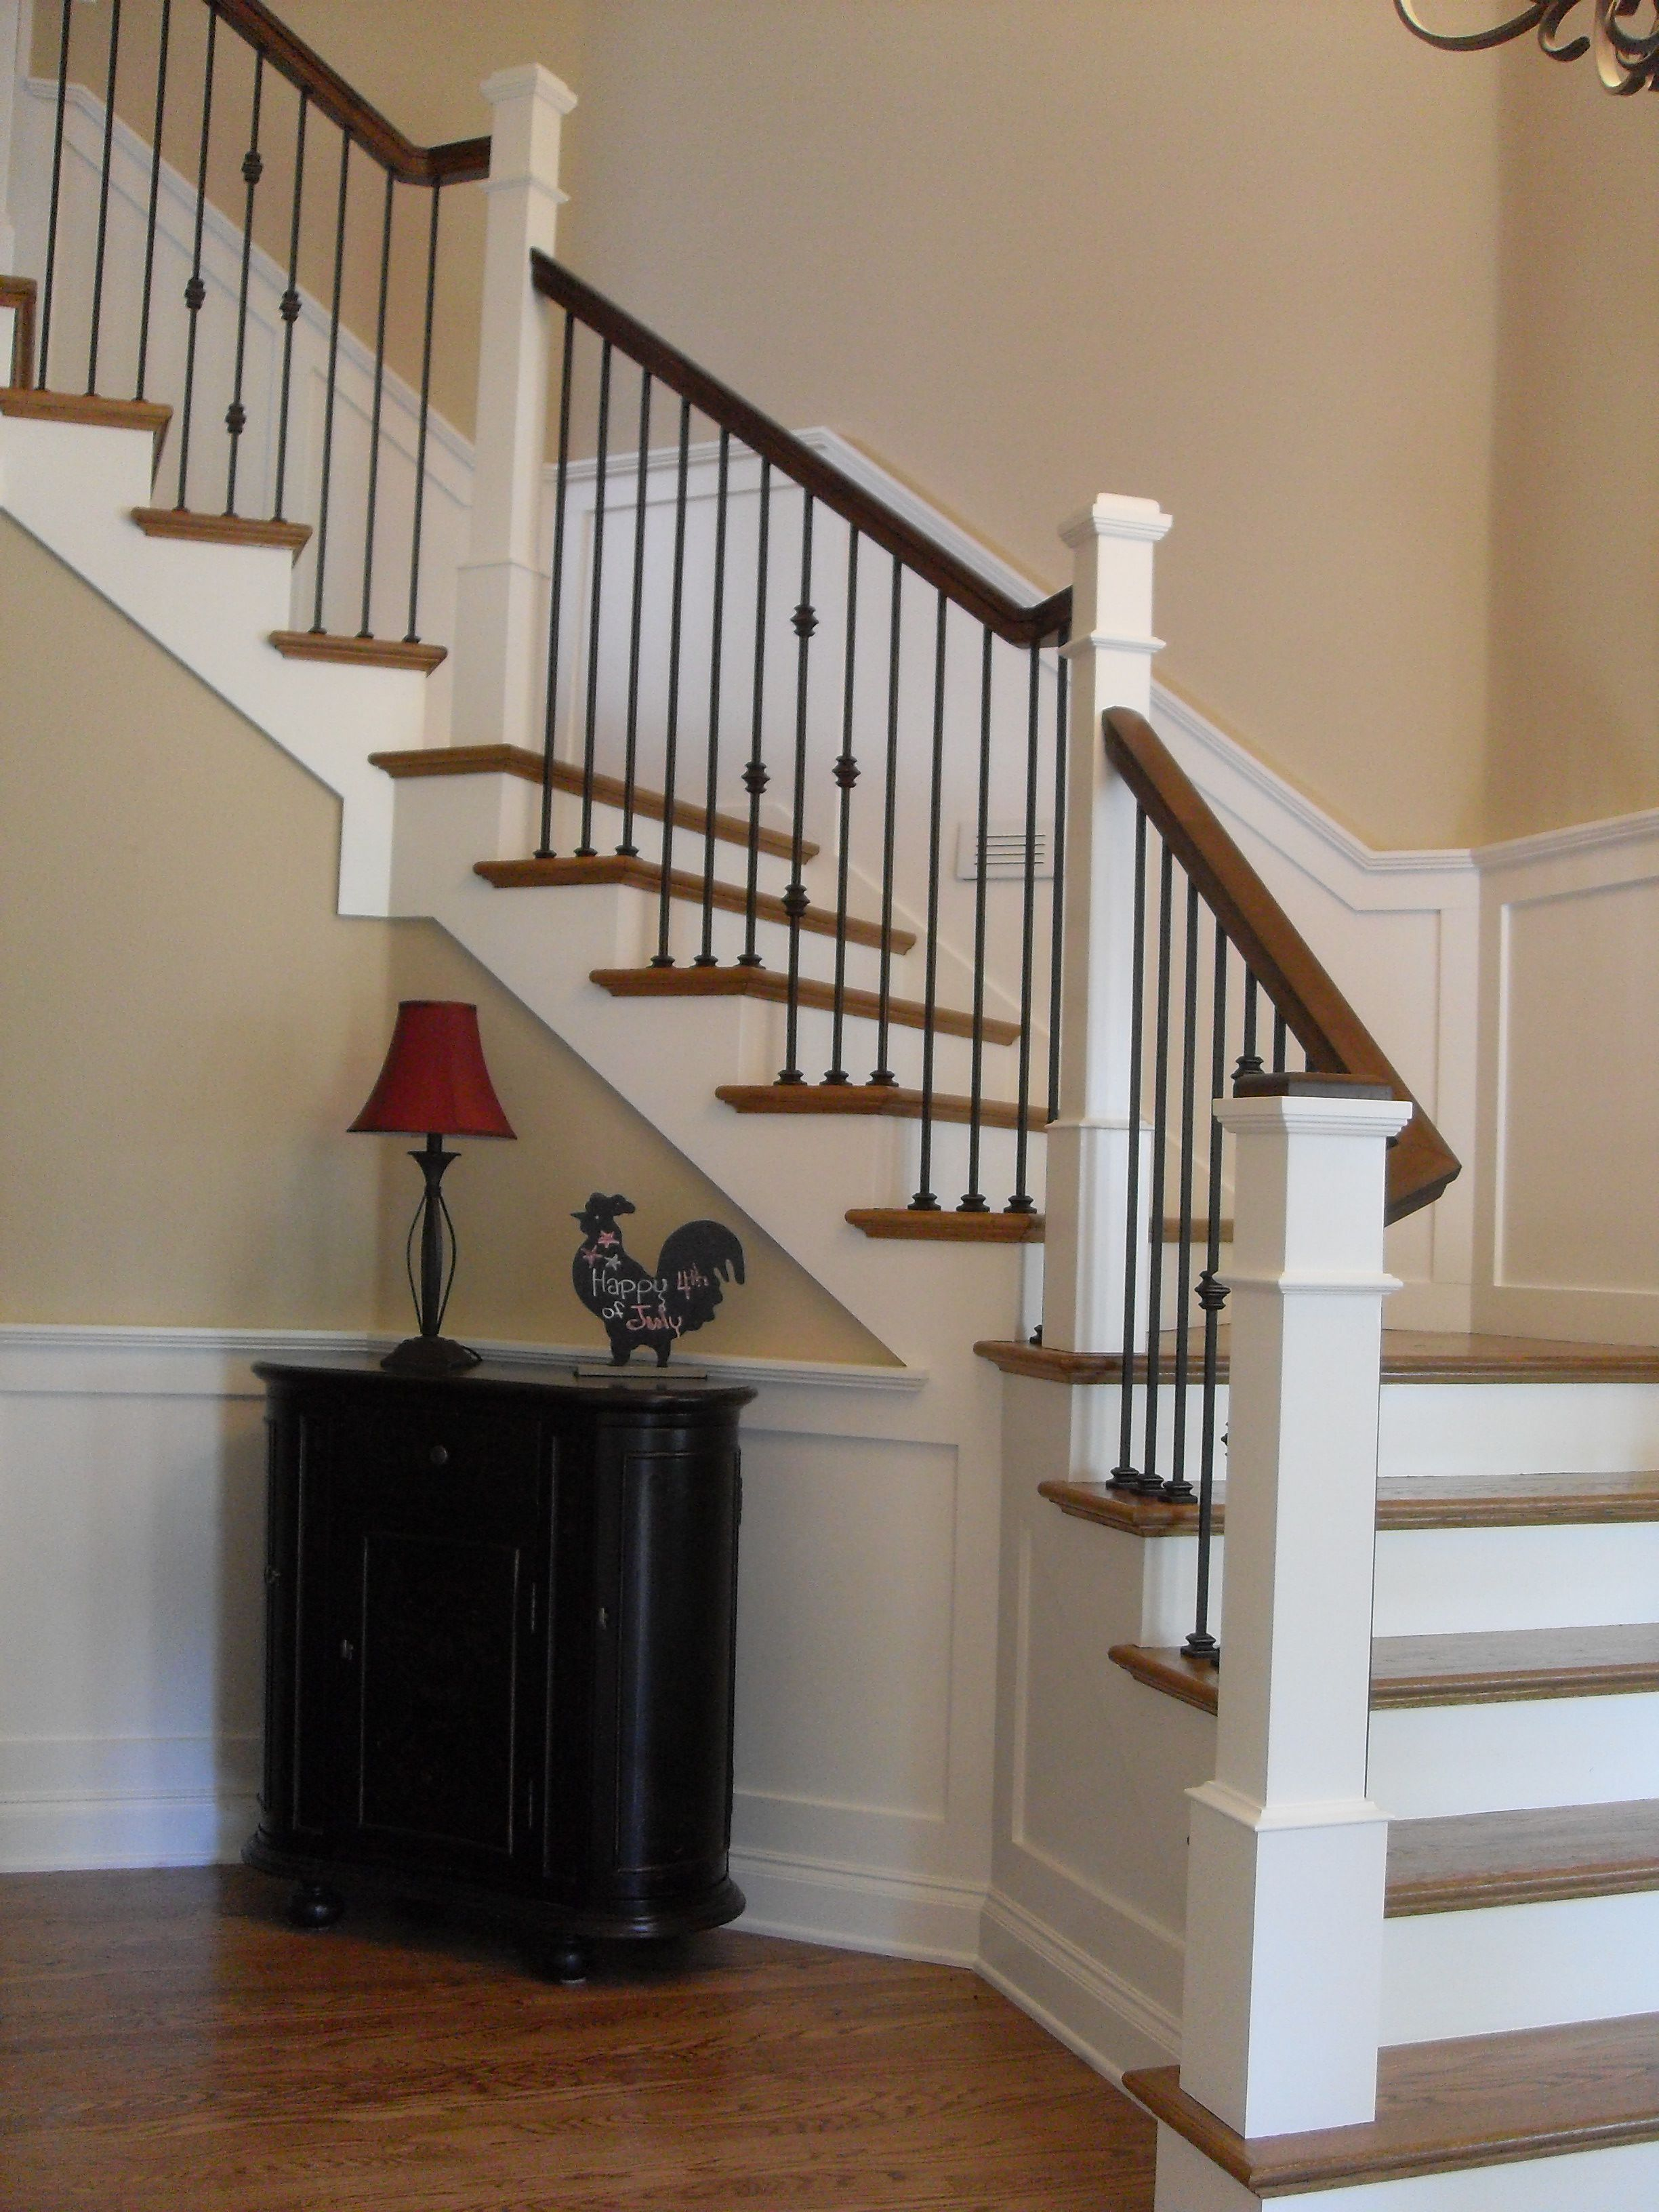 Stair Newel Post Balusters Wrought Iron Staircase Wrought Iron Stairs Stairs Design